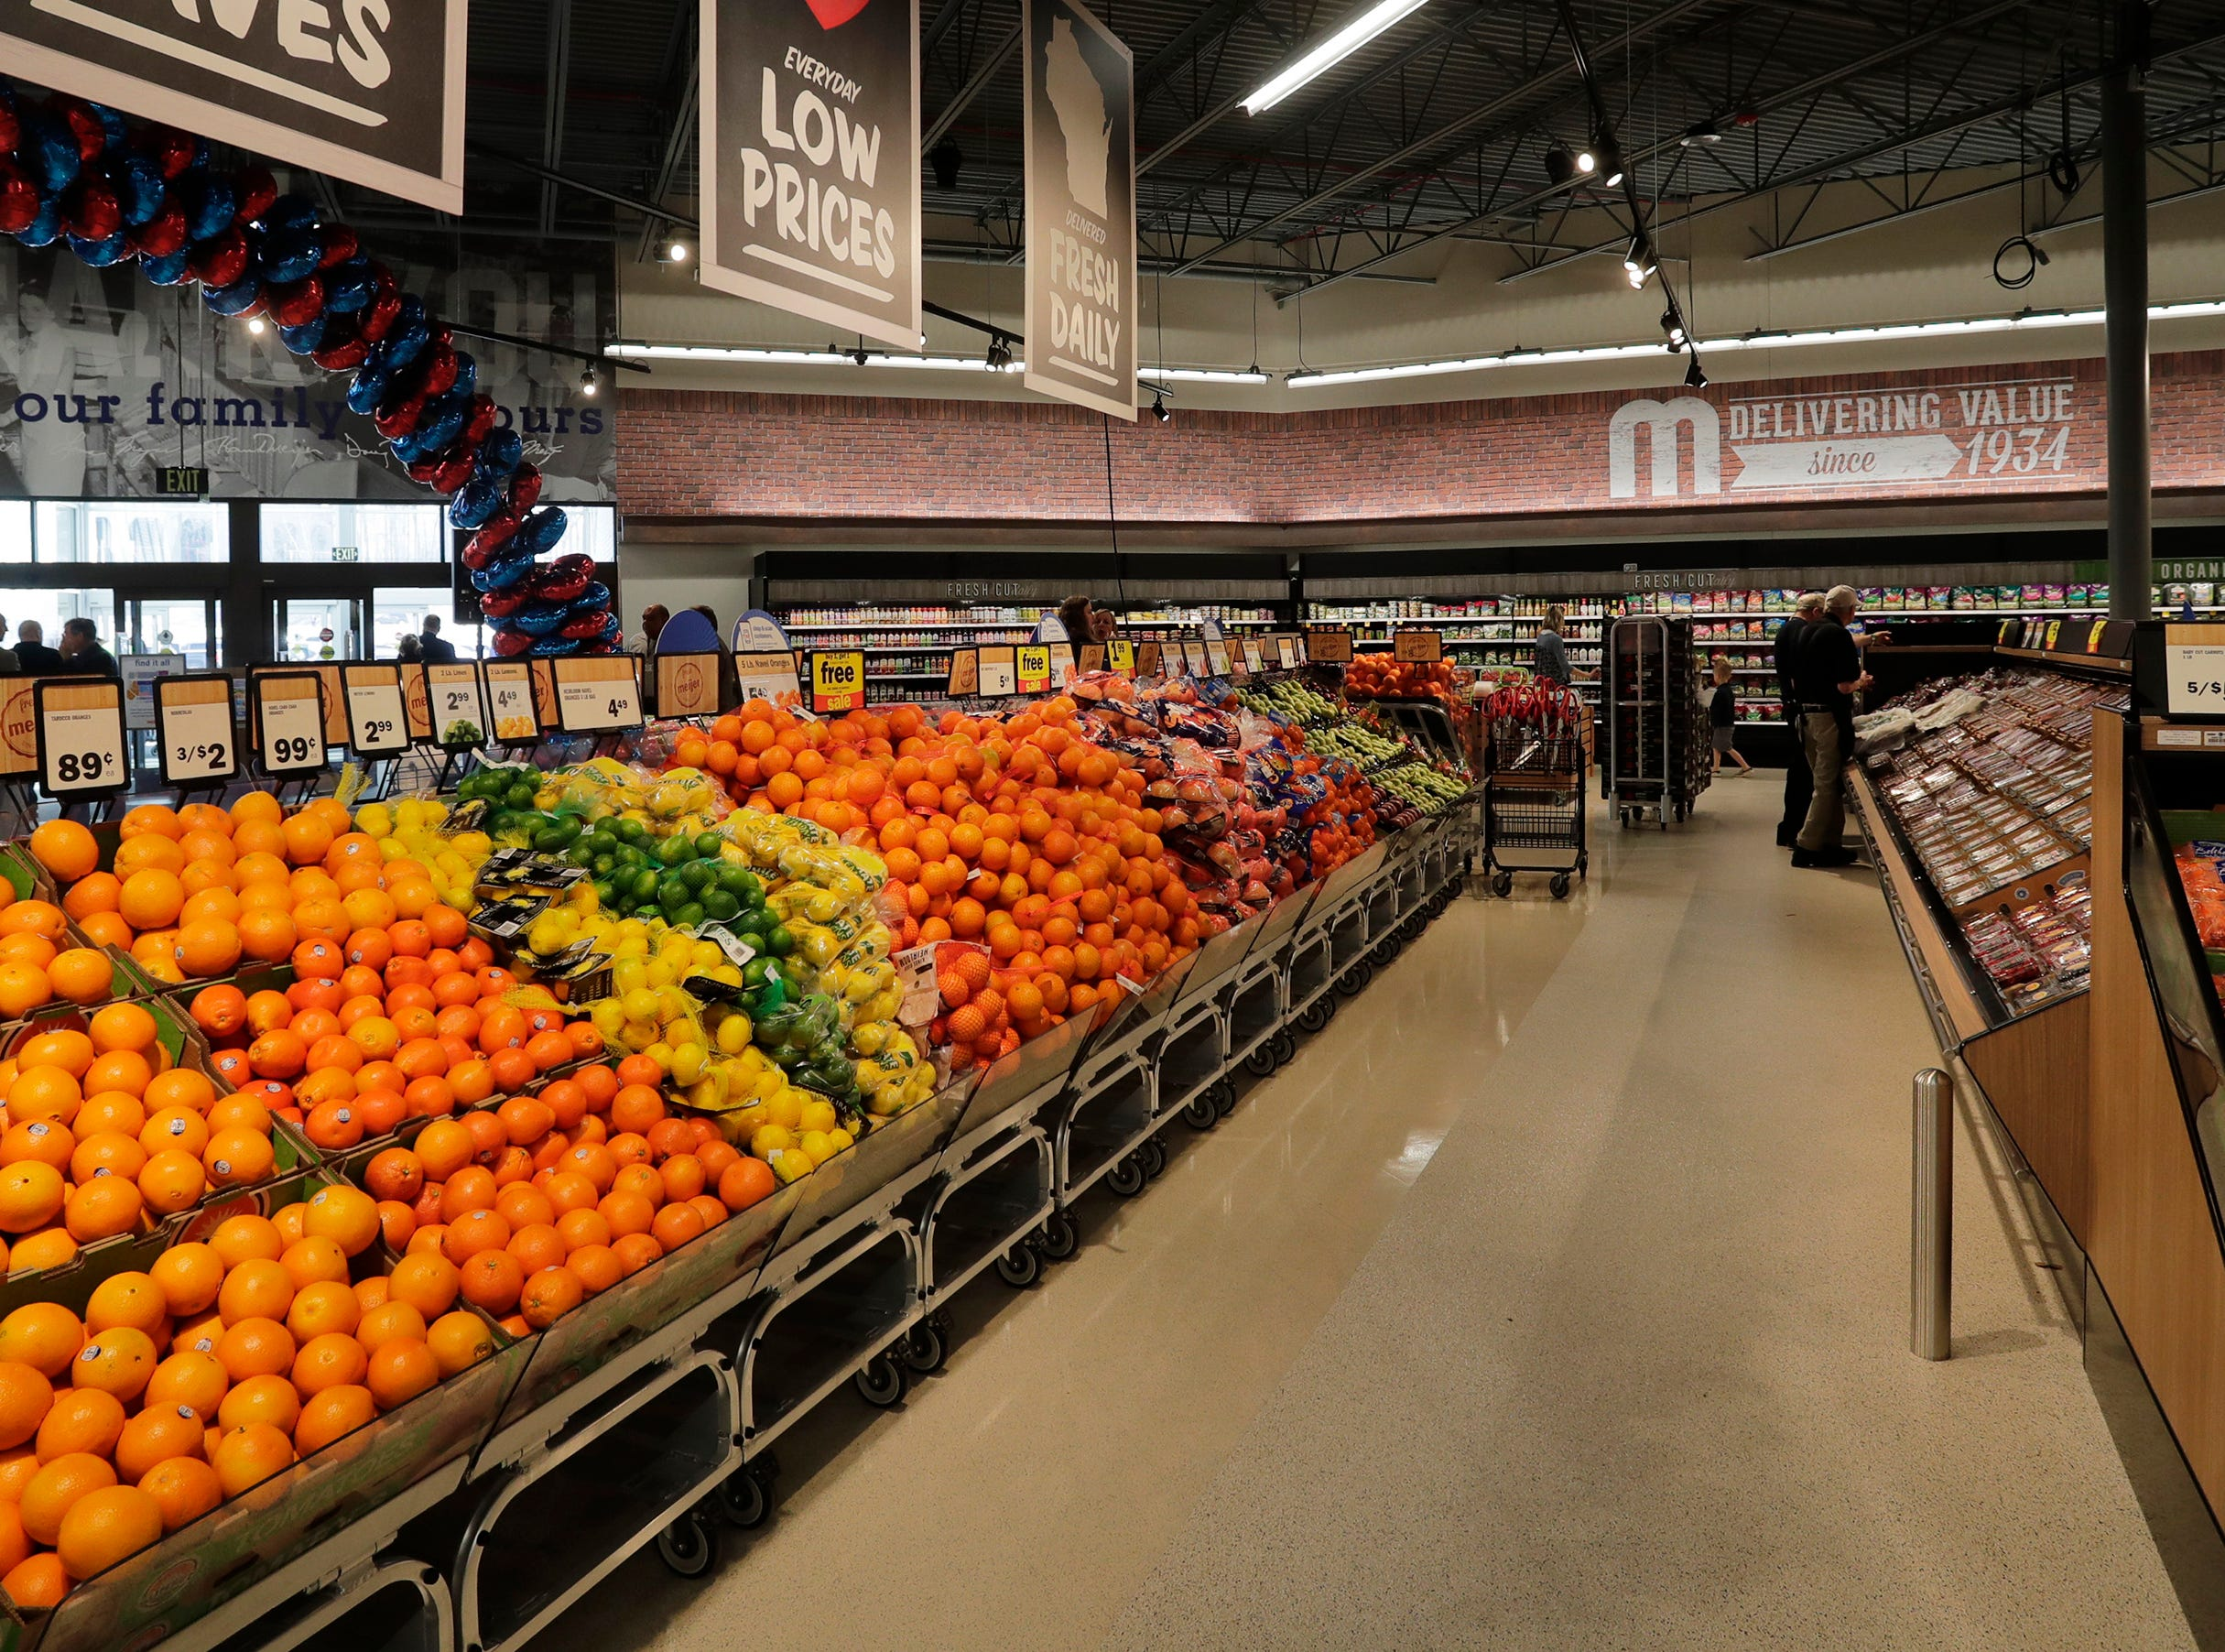 The fruit area at Meijer, Thursday April 25, 2019, in Sheboygan, Wis. The 155,000-square-foot supercenter has 300 employees on opening day.